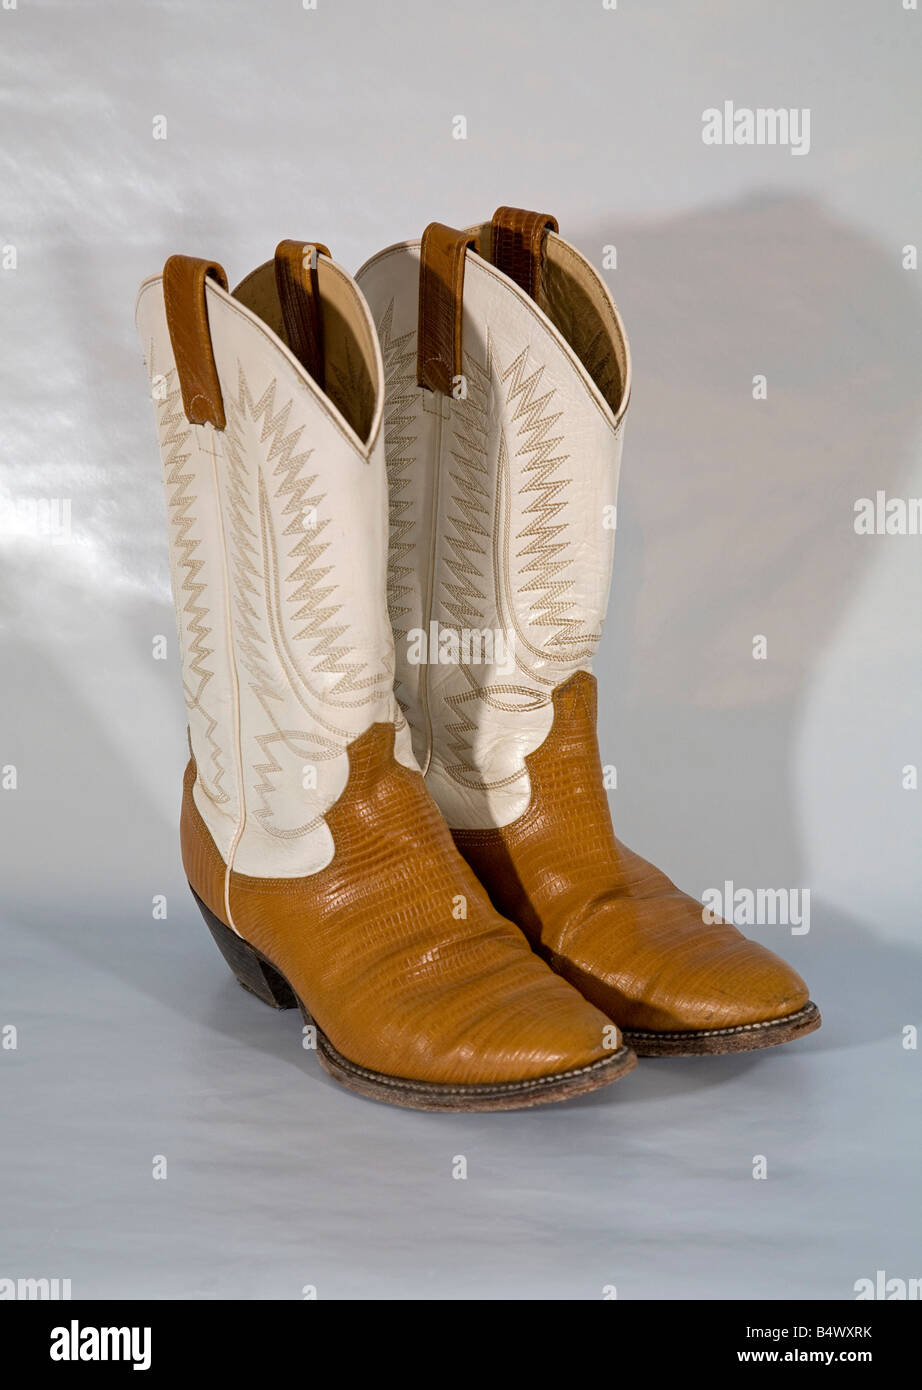 A pair of embroidered high heeled high topped western cowboy boots made in Mexico - Stock Image